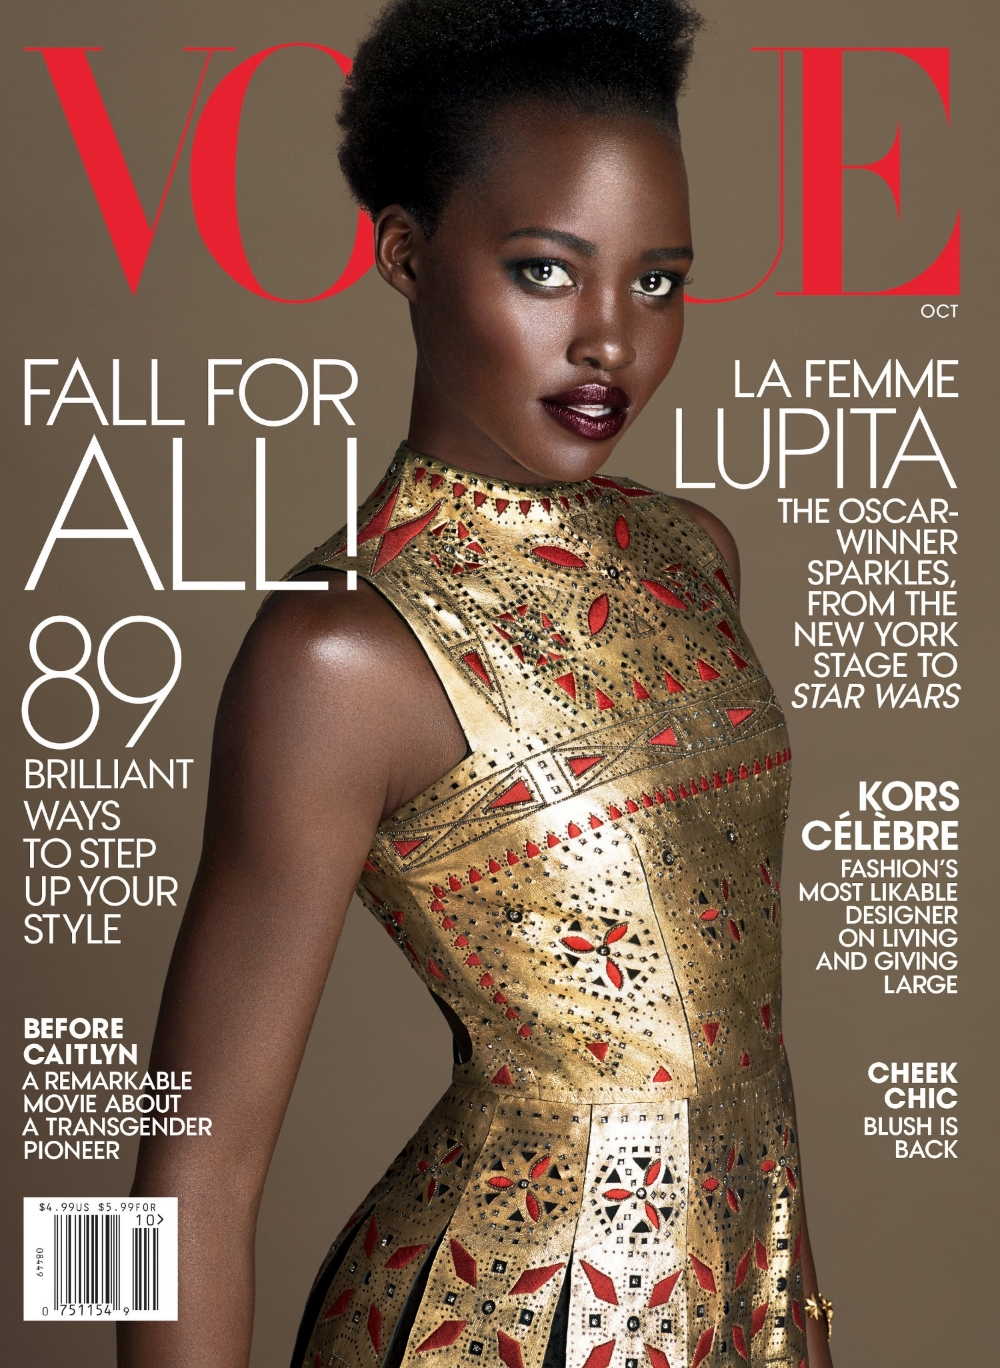 lupita-nyongo-vogue-cover-october-2015-10.jpeg